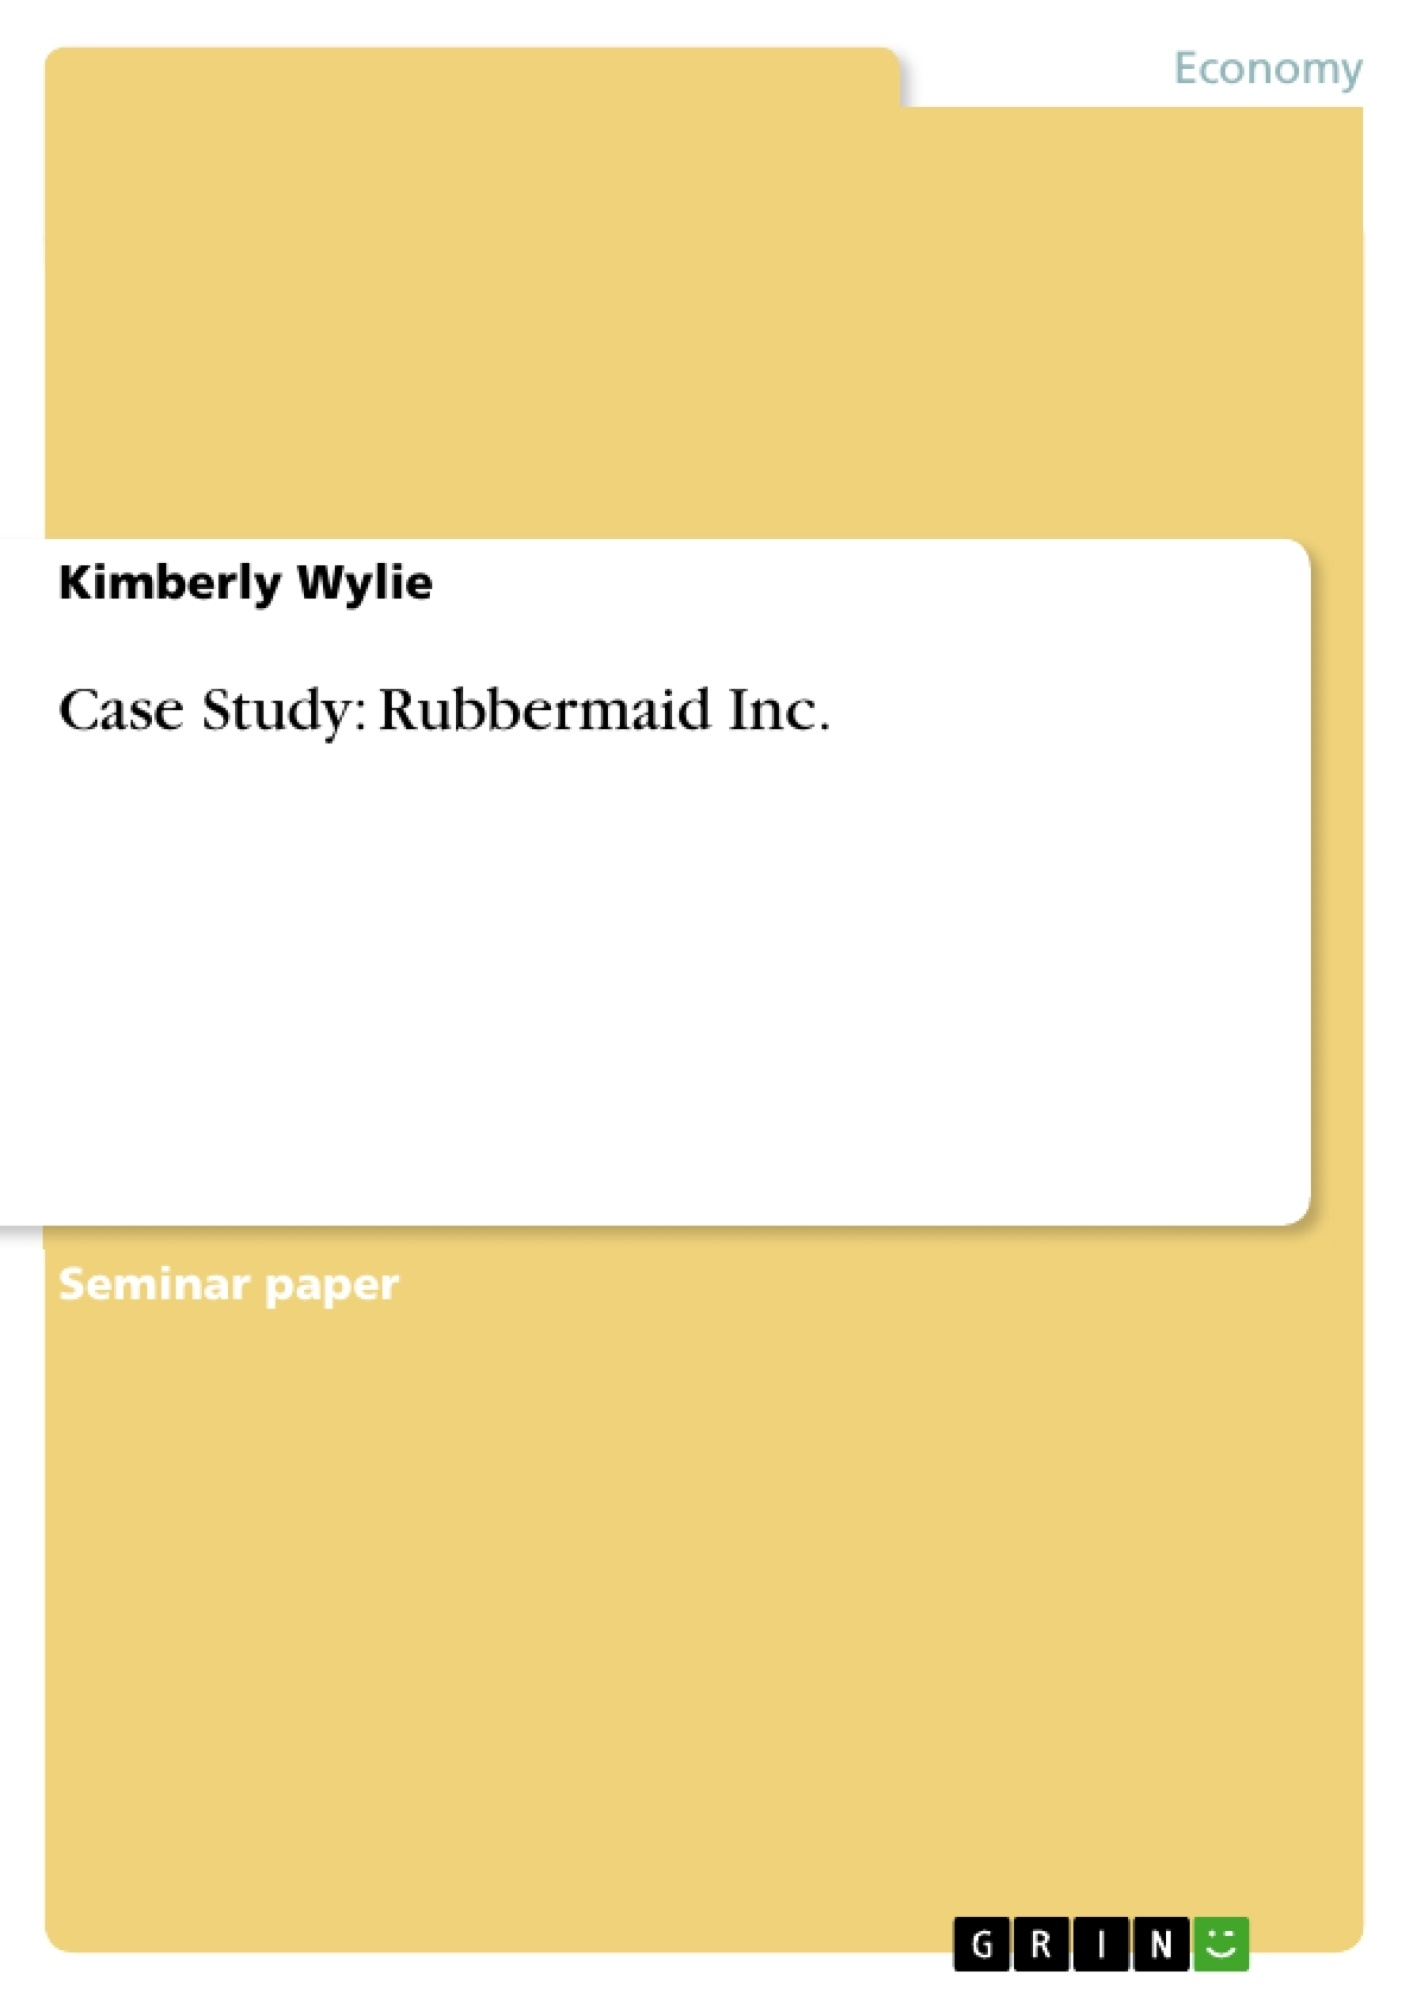 Title: Case Study: Rubbermaid Inc.